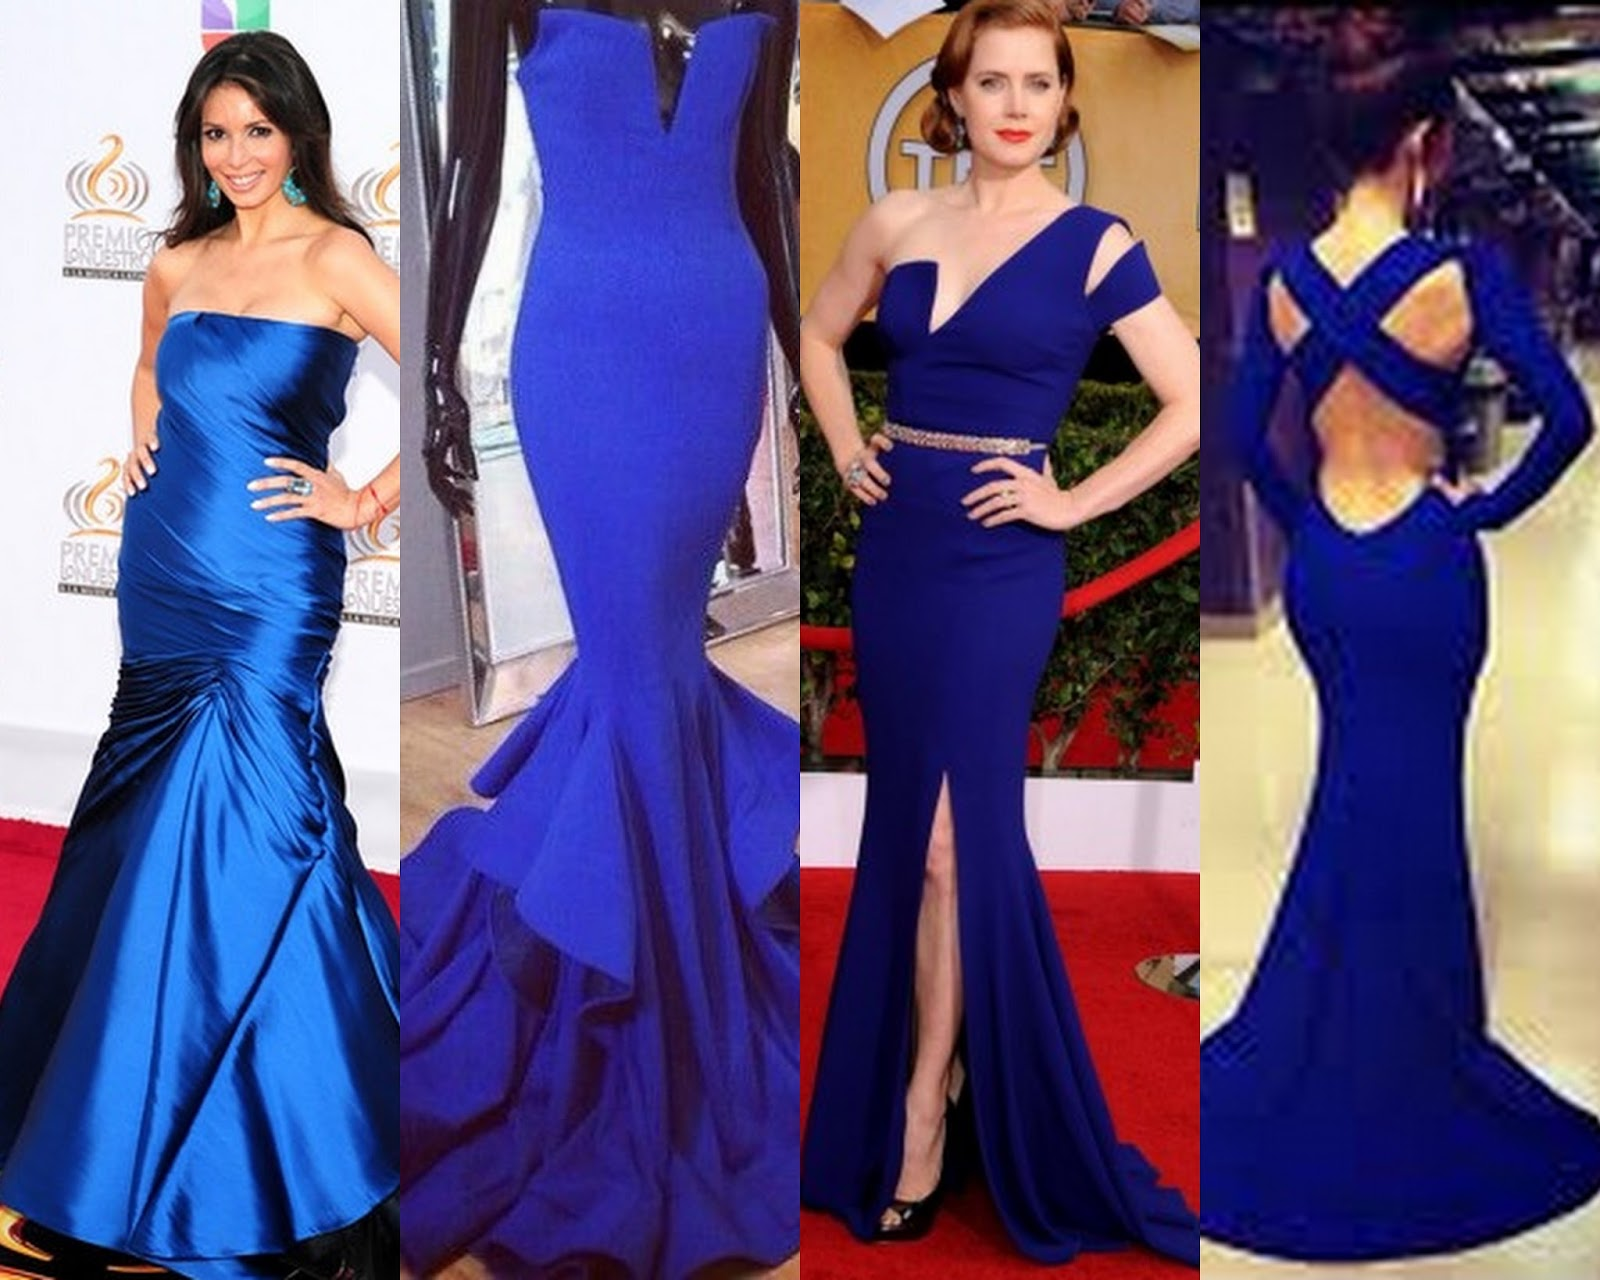 The Royal Blue Gown Designs Are Hot Fashion Trends Inspired By Miss